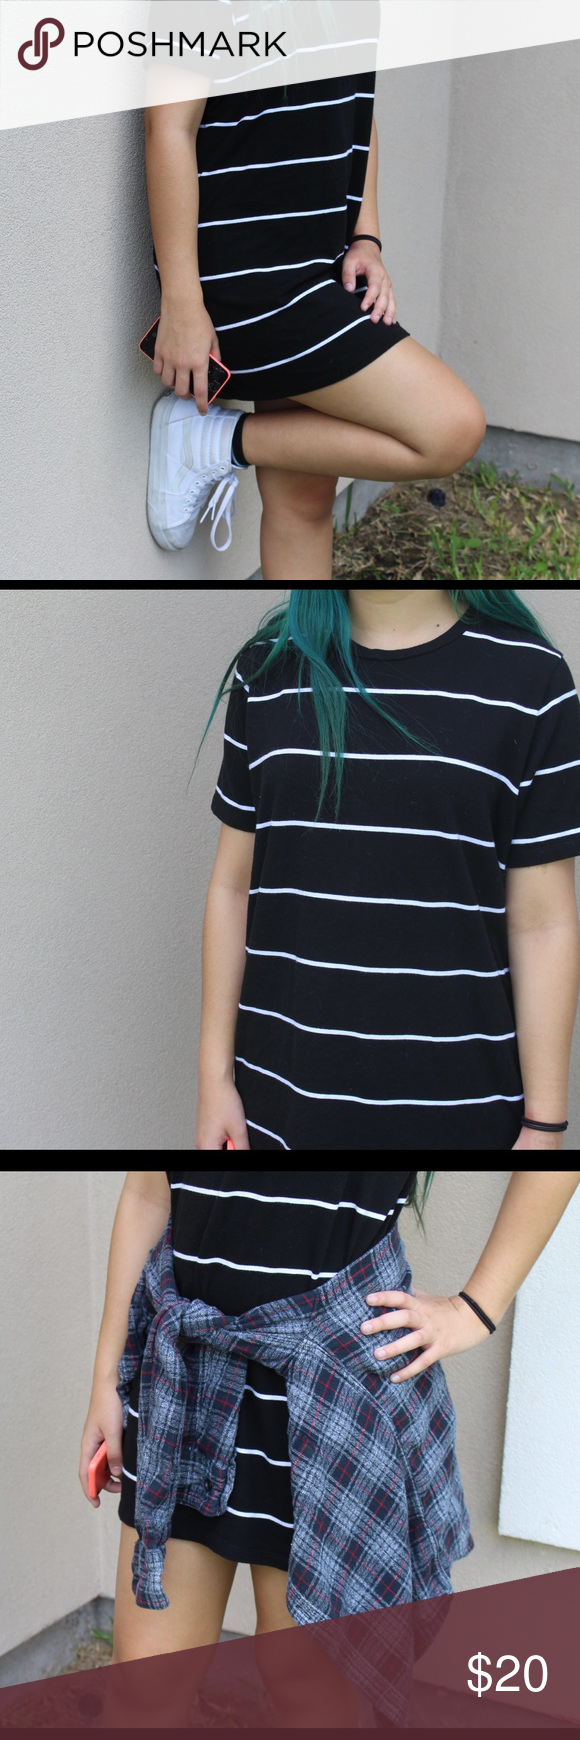 T shirt dress Black and white stripes t shirt dress from pacsun! Brand new hardly worn! And super cute// size is ONE FITS ALL PacSun Dresses Mini